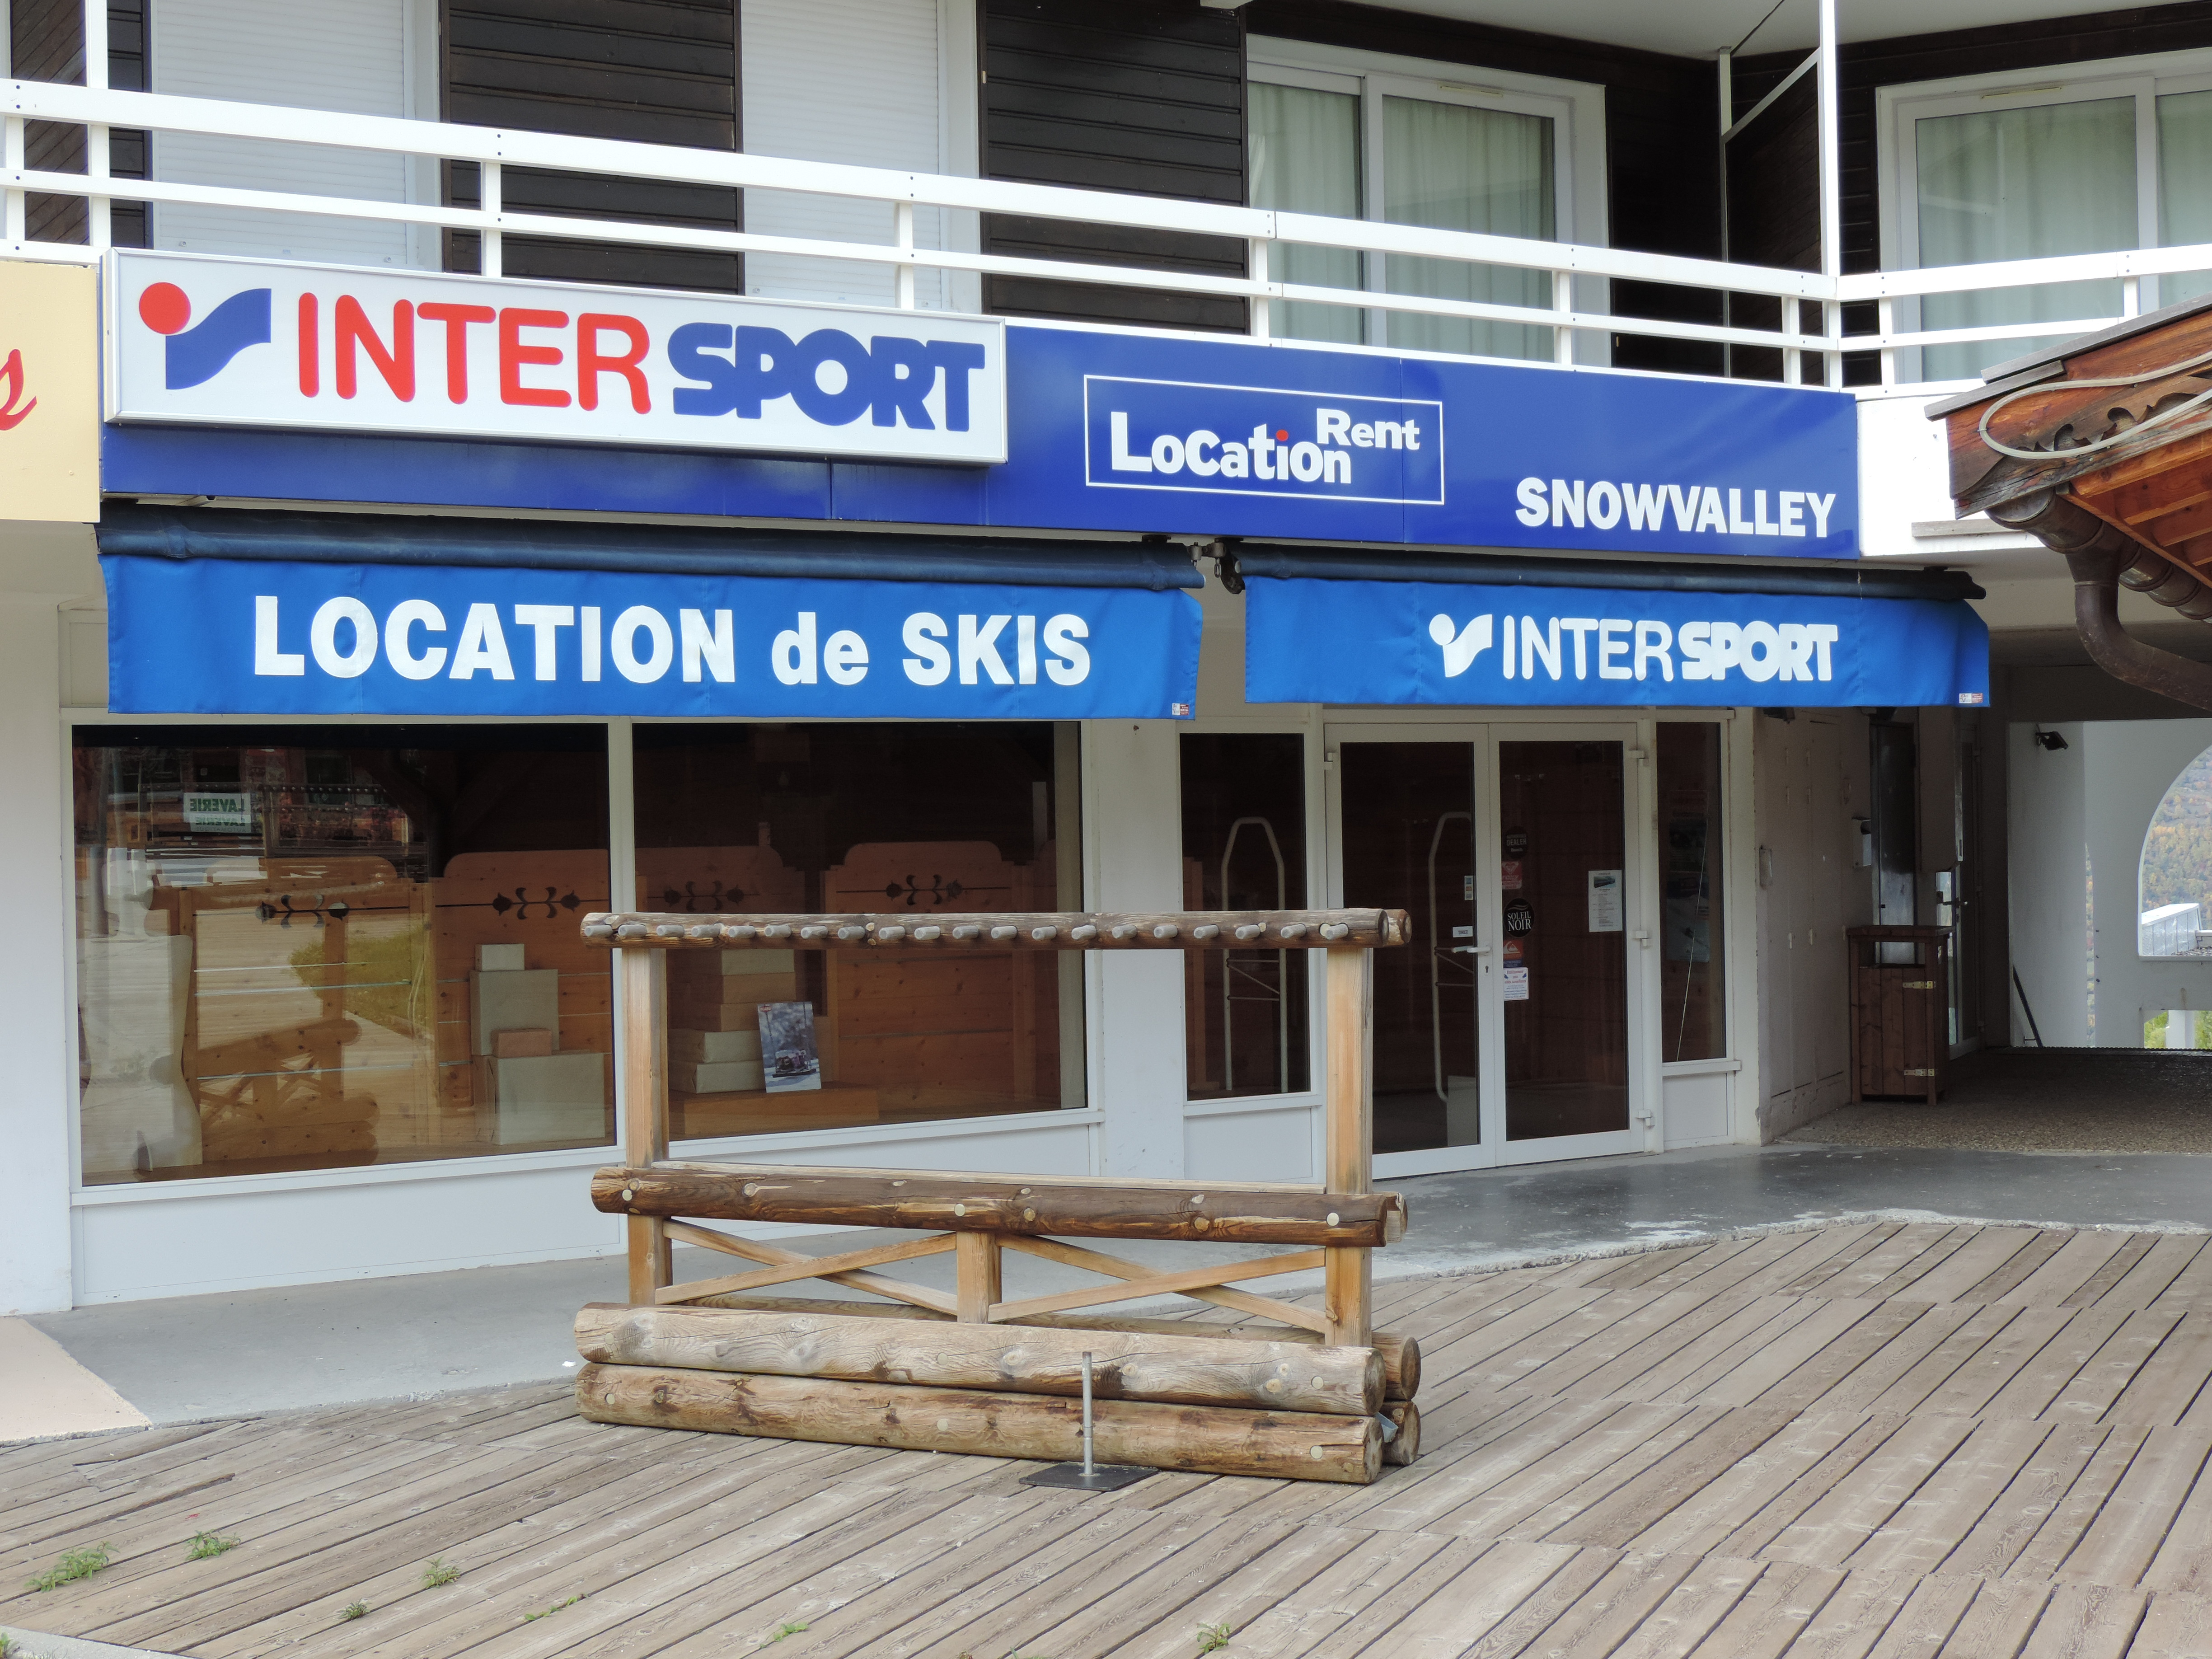 Snow valley intersport puy saint vincent pays des crins office de tourisme - Office tourisme puy st vincent ...